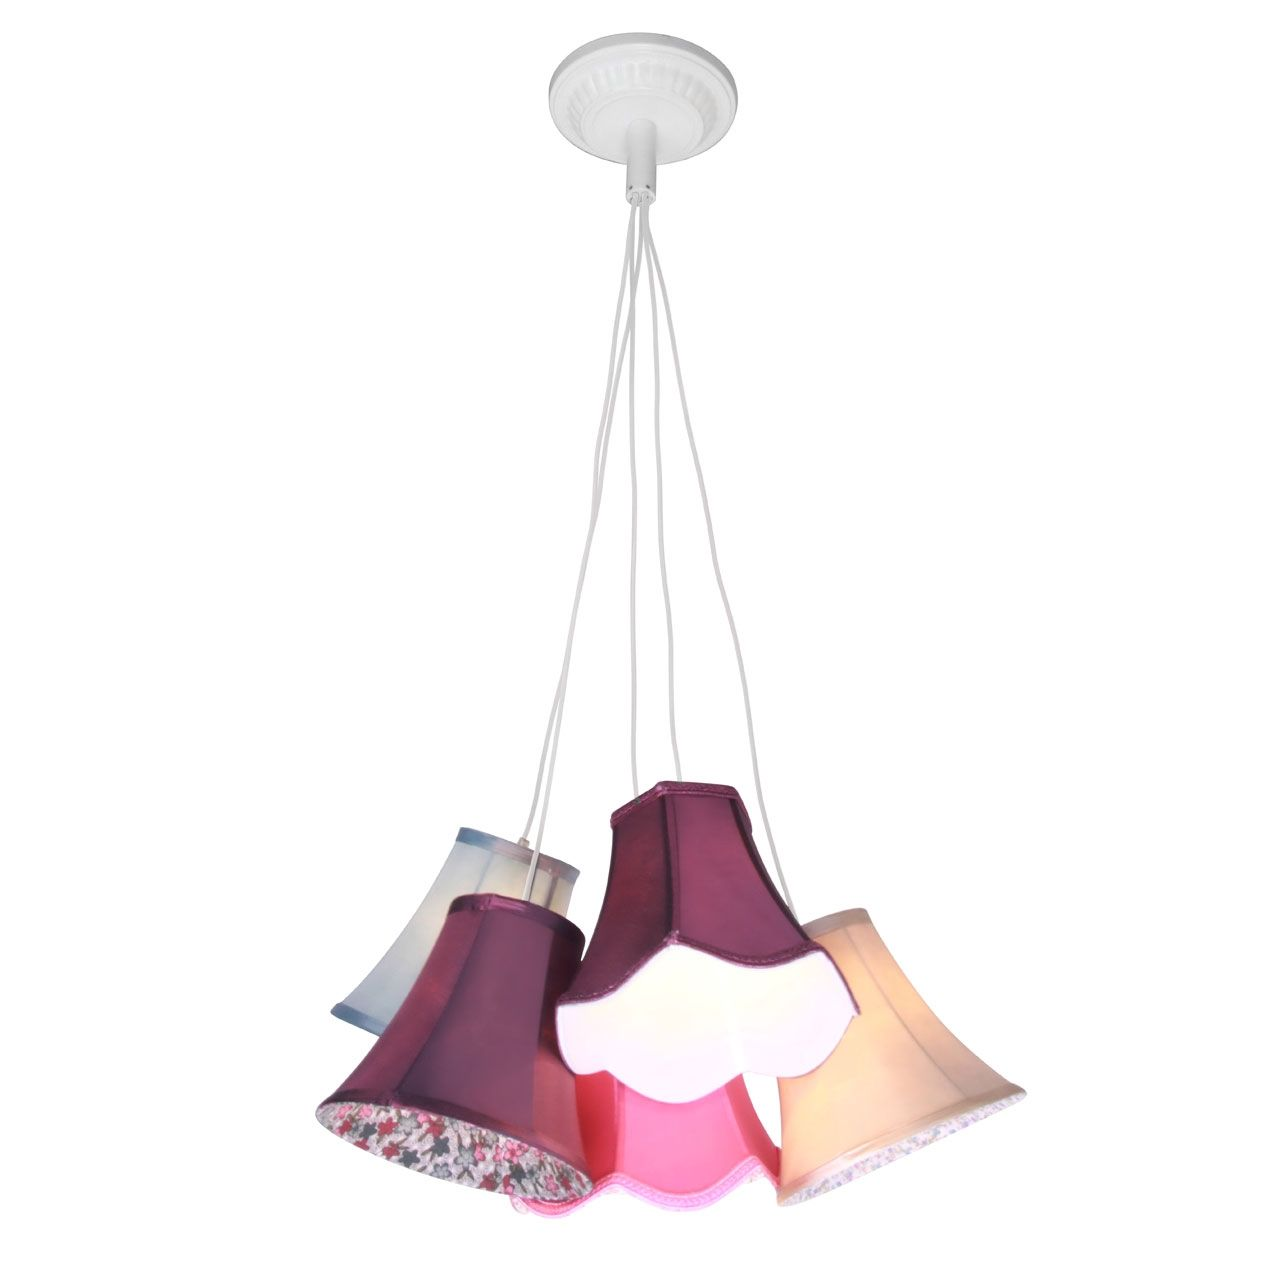 Picture of pendant light tiered 9 and 5 multi coloured shades picture of pendant light tiered 9 and 5 multi coloured shades ceiling hanging lights aloadofball Image collections